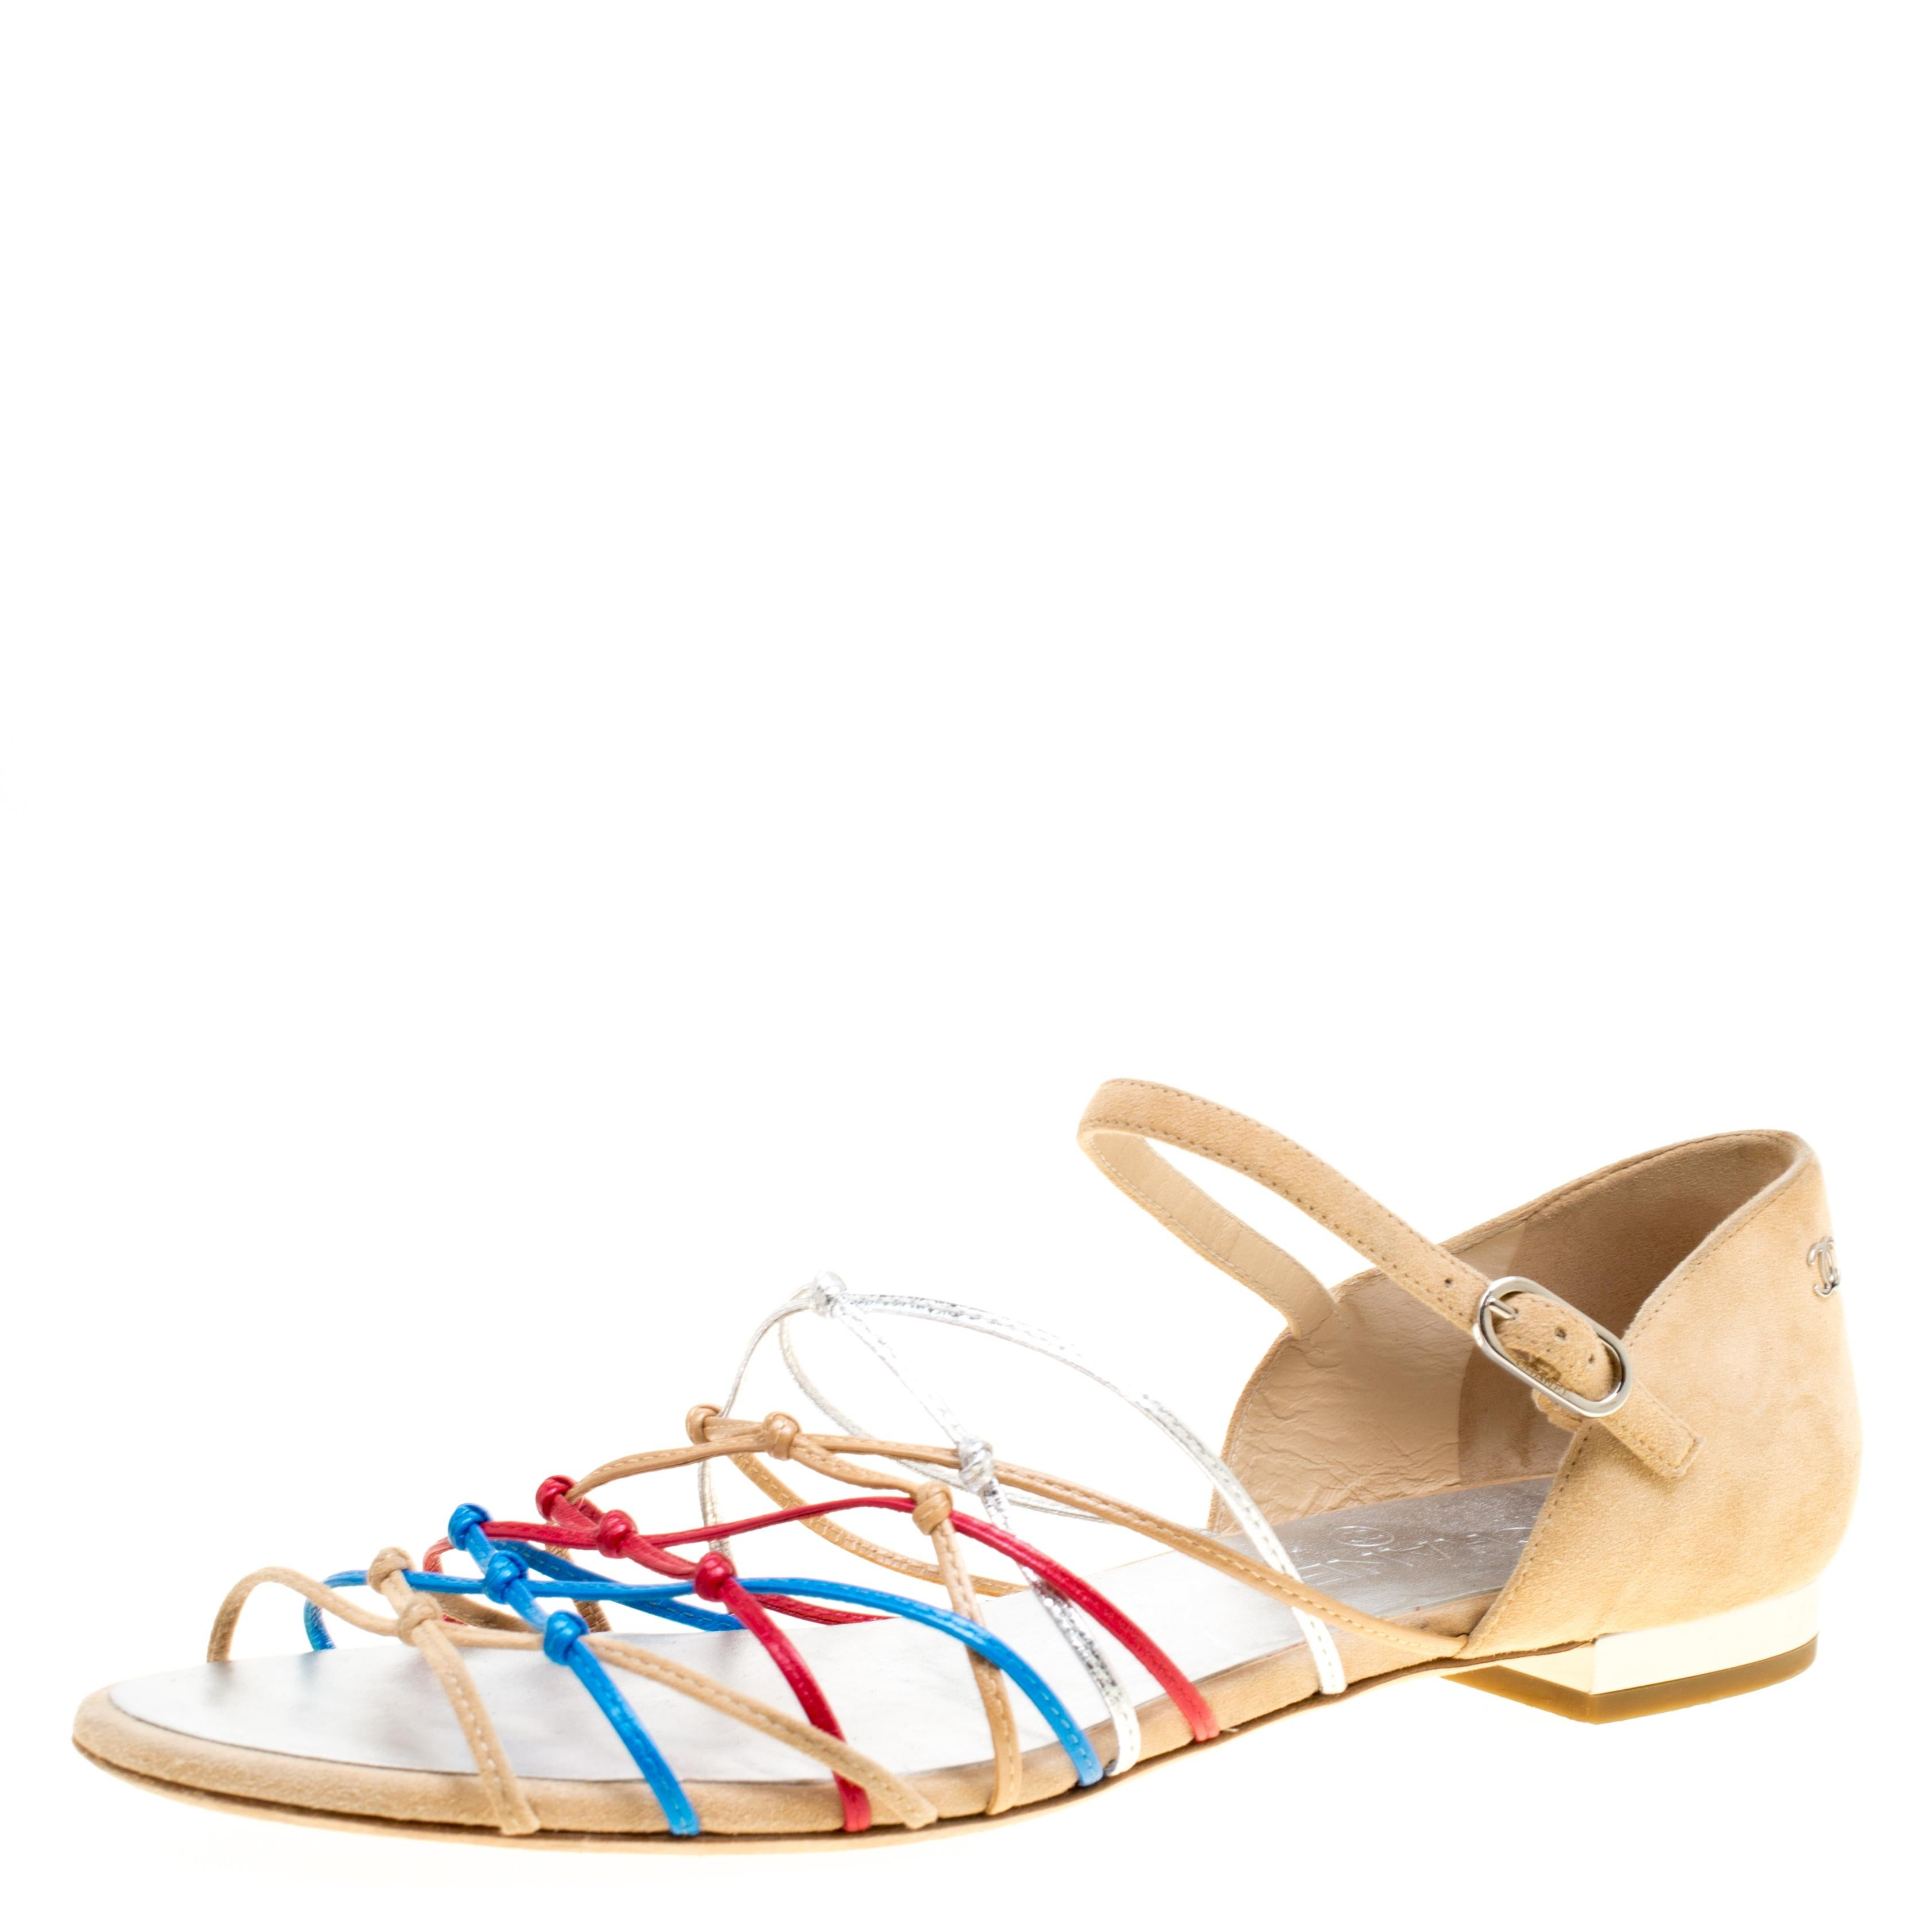 6b9070ec43 Chanel Multicolor Printed Fabric Ankle Wrap Sandals Size 39.5 For Sale at  1stdibs